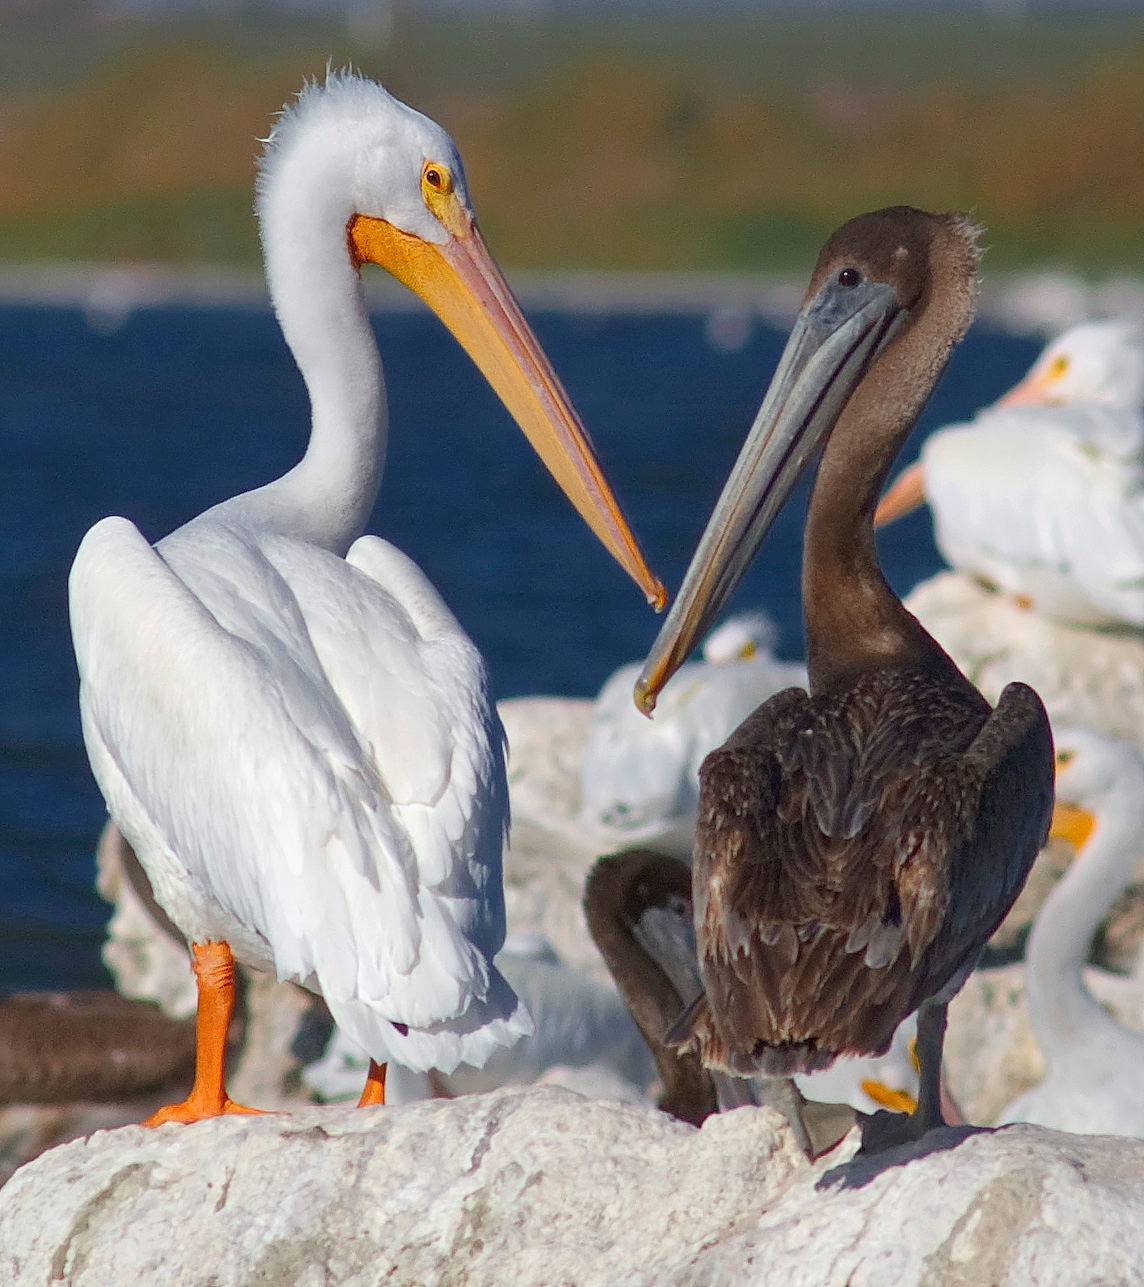 American white pelican and California brown pelican, Salton Sea.